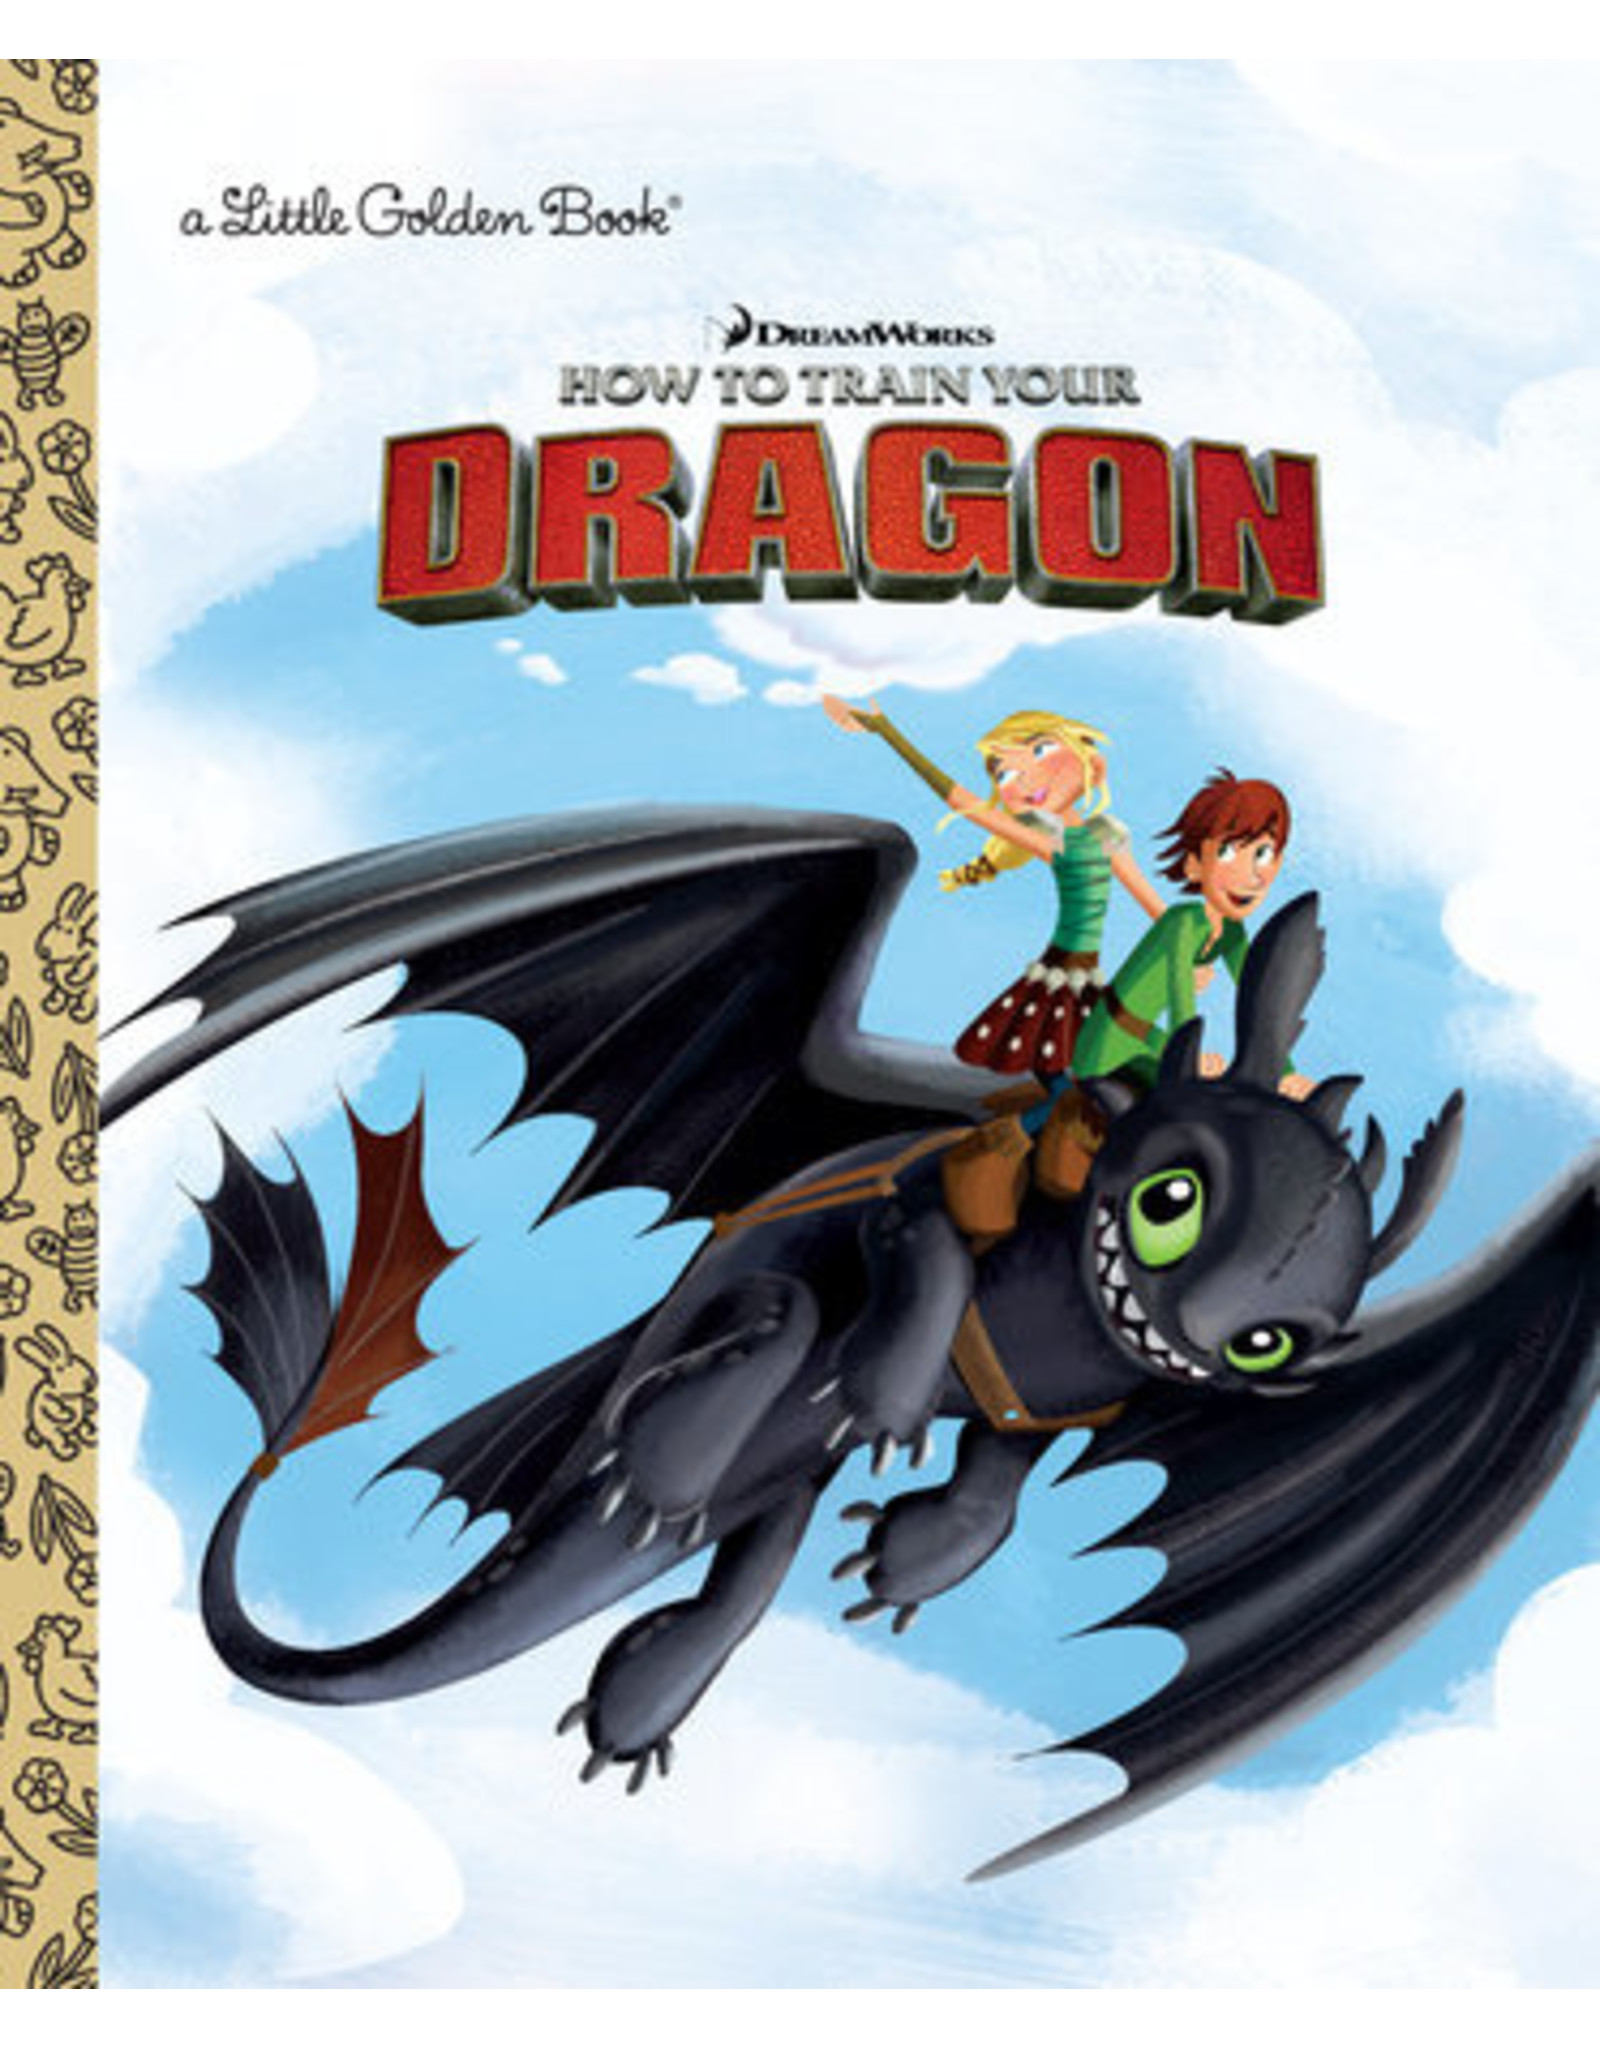 DREAMWORKS HOW TO TRAIN YOUR DRAGON LITTLE GOLDEN BOOK